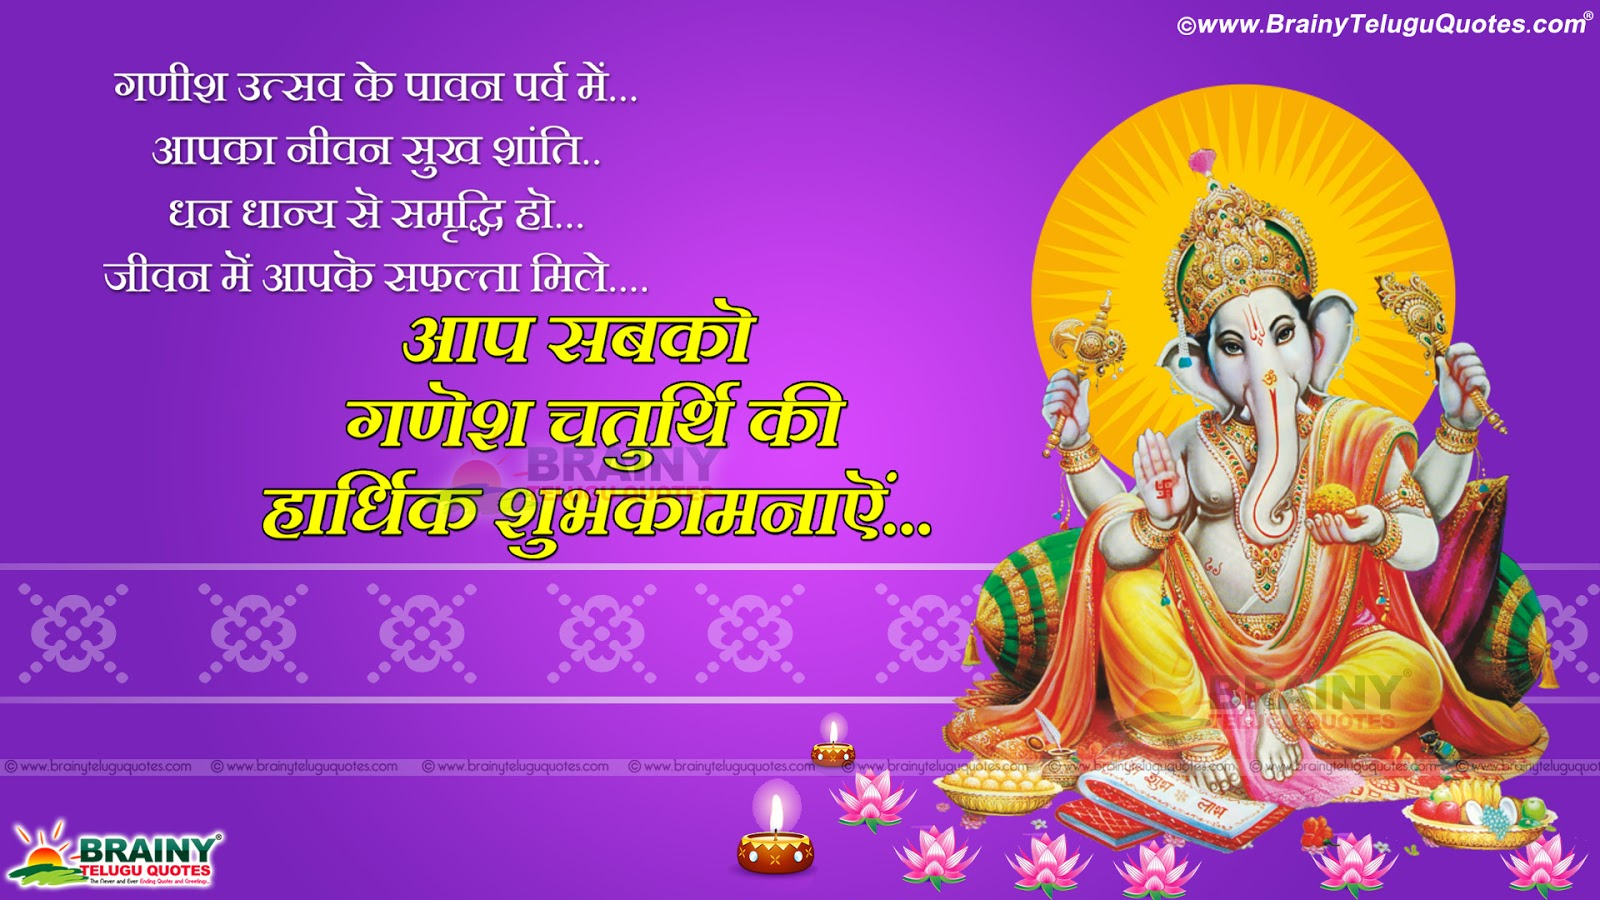 ganesh chaturthi advance wishes greeting card image picture photo vinayaka ganesh chaturthi greeting cards ecards images pictures photos